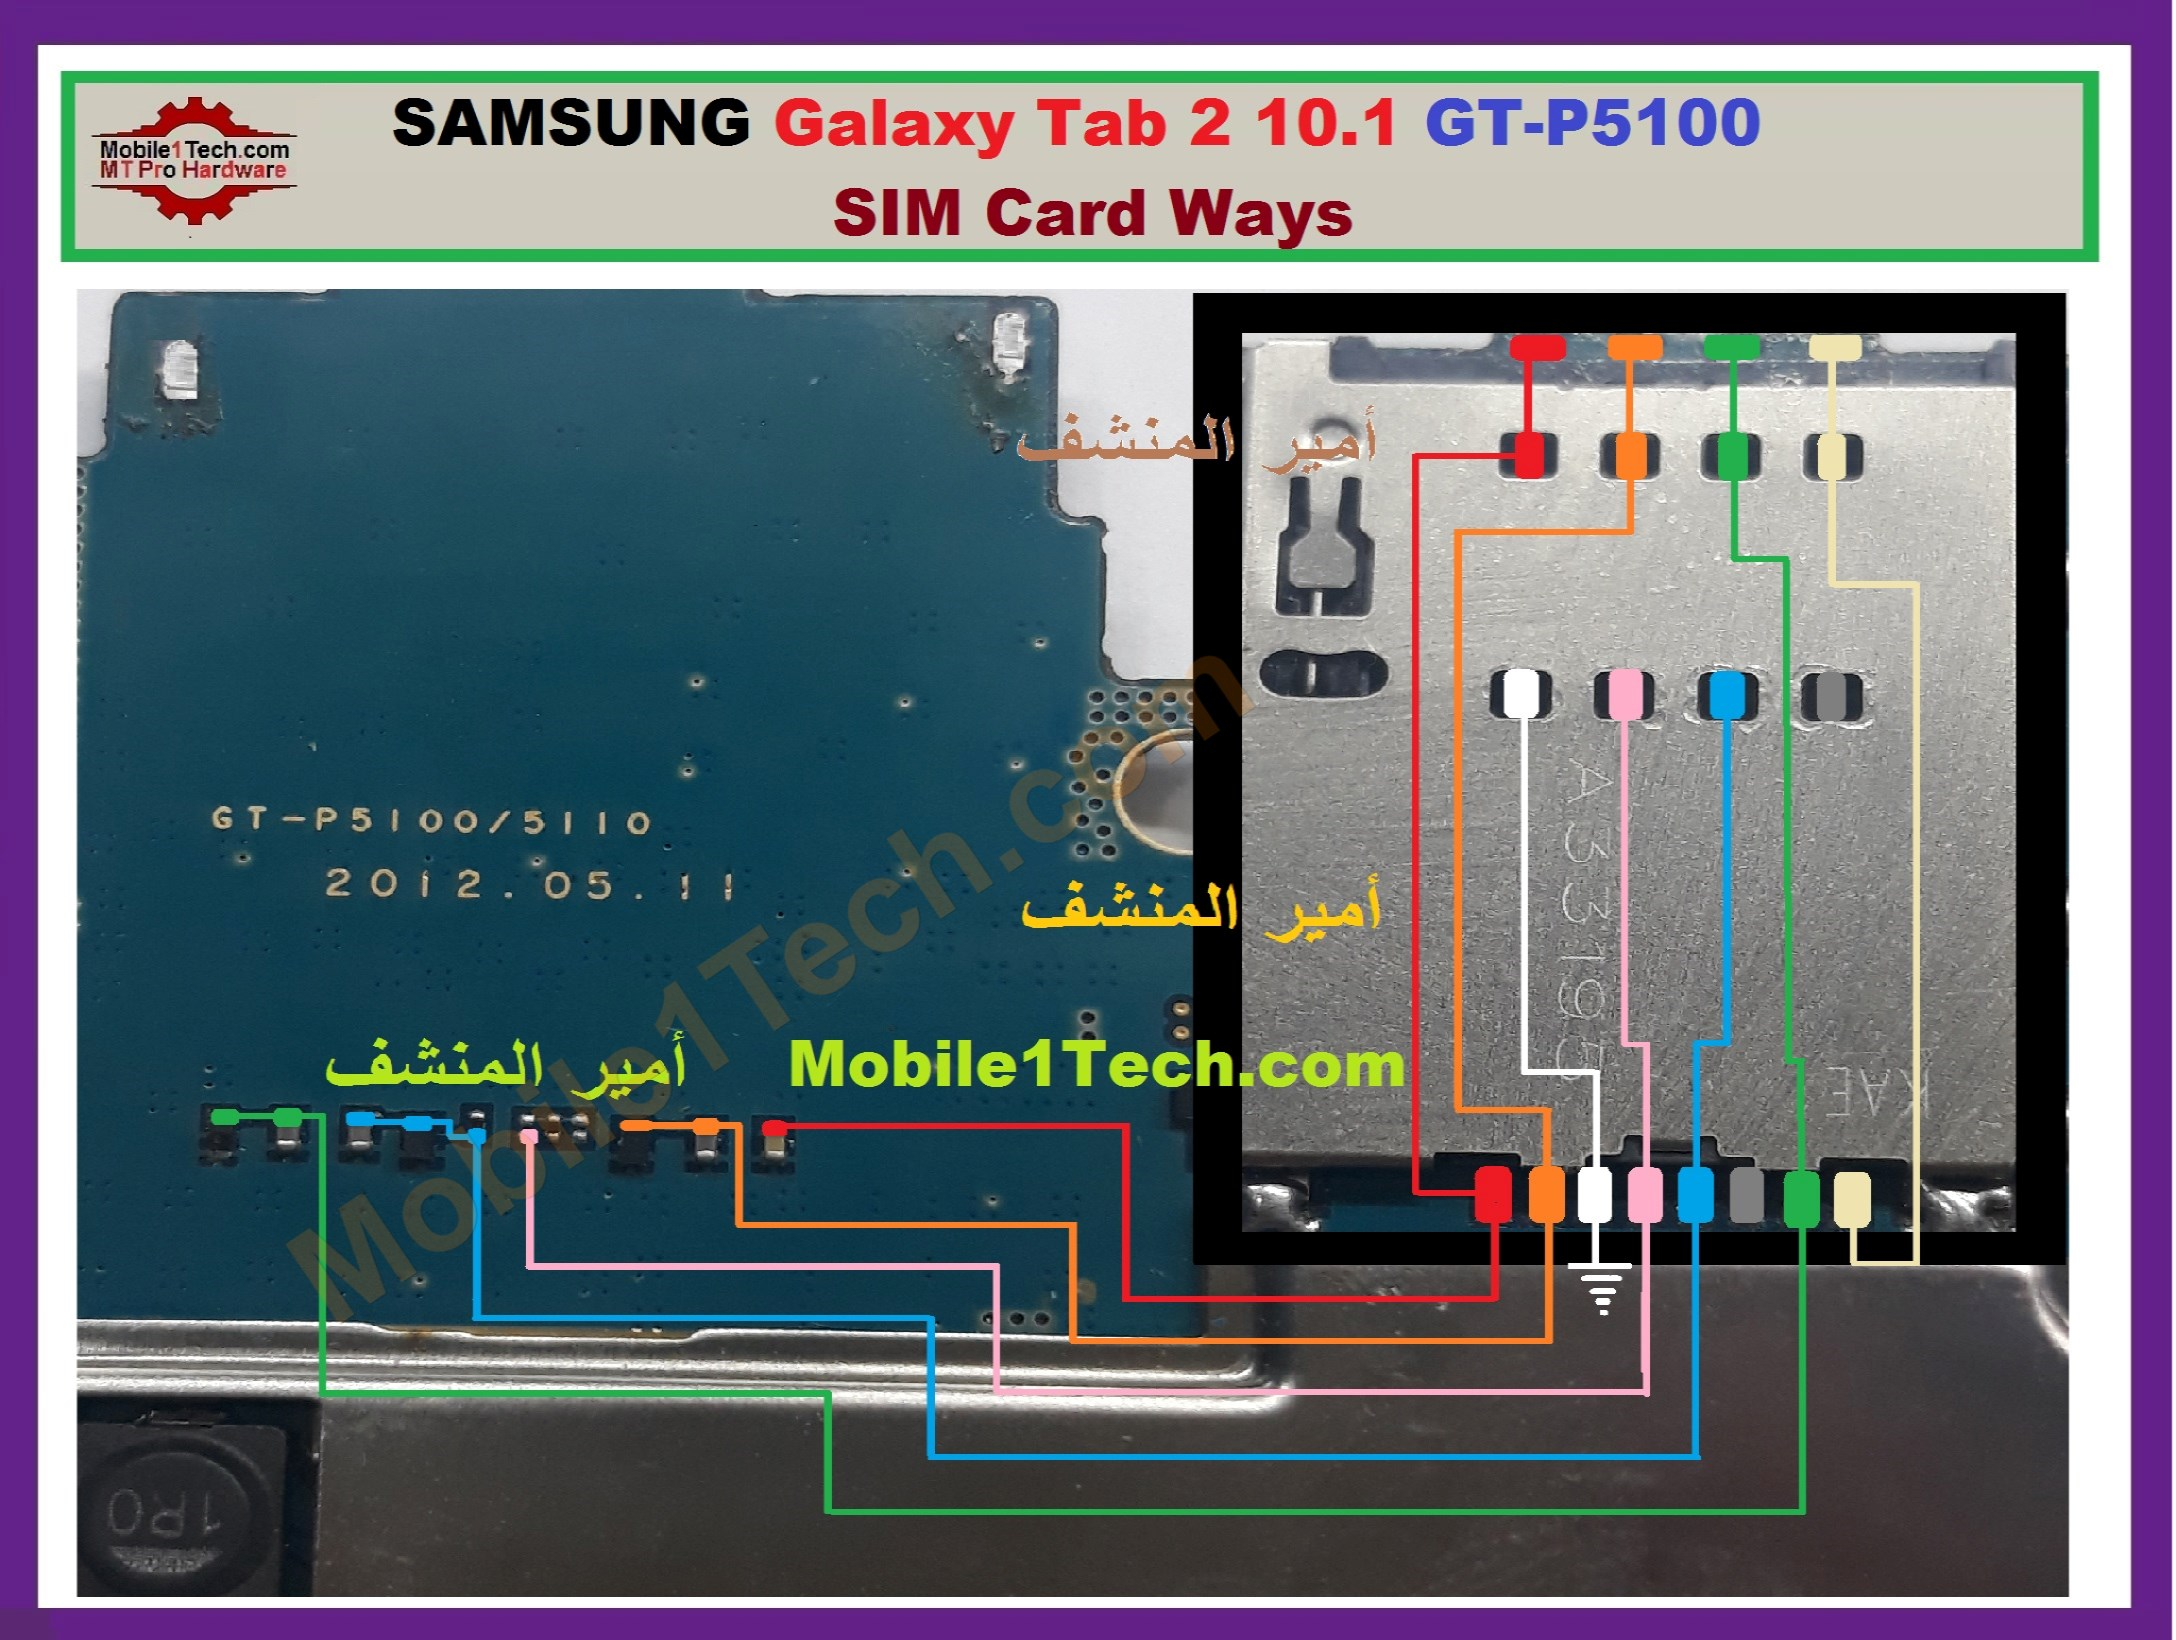 Samsung Galaxy Tab 2 10.1 P5100 Memory Card Not Working Problem